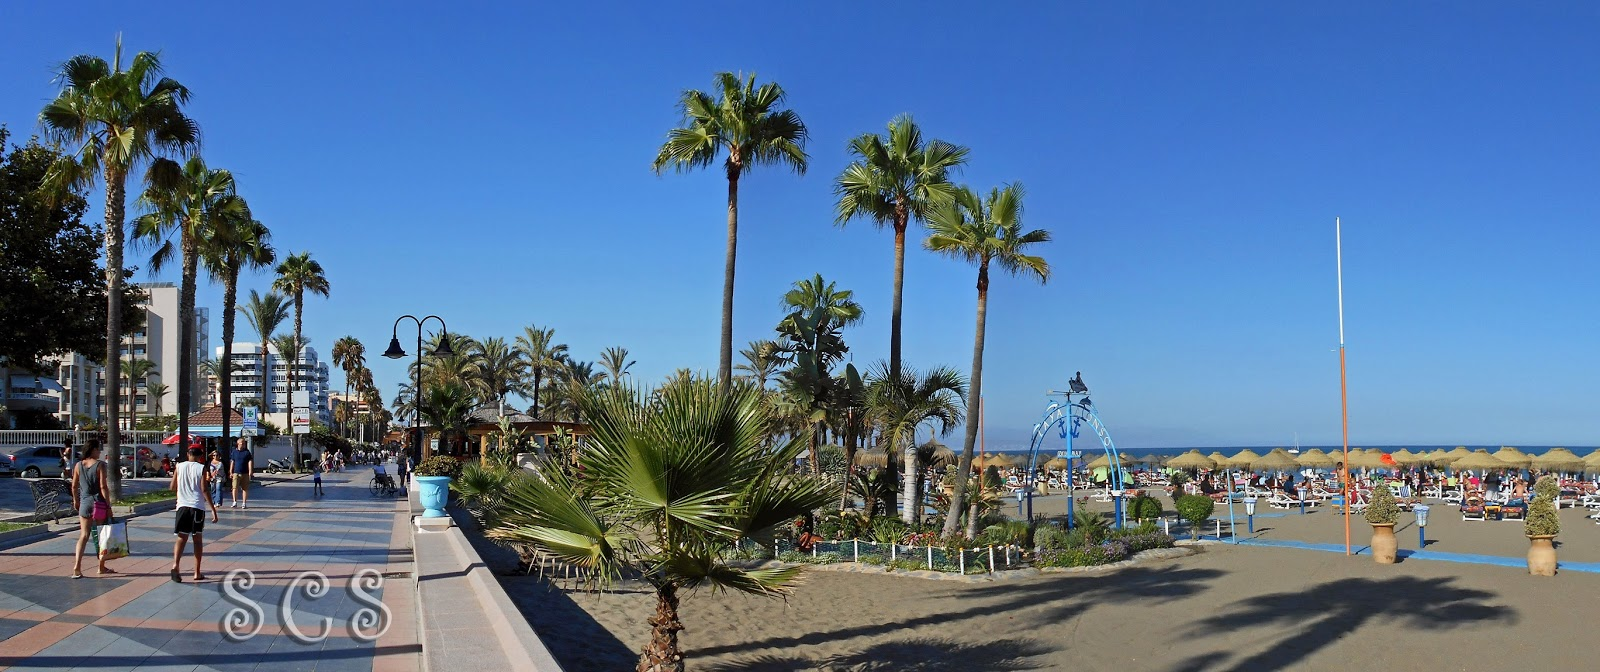 Costa del sol for Aquarium torremolinos